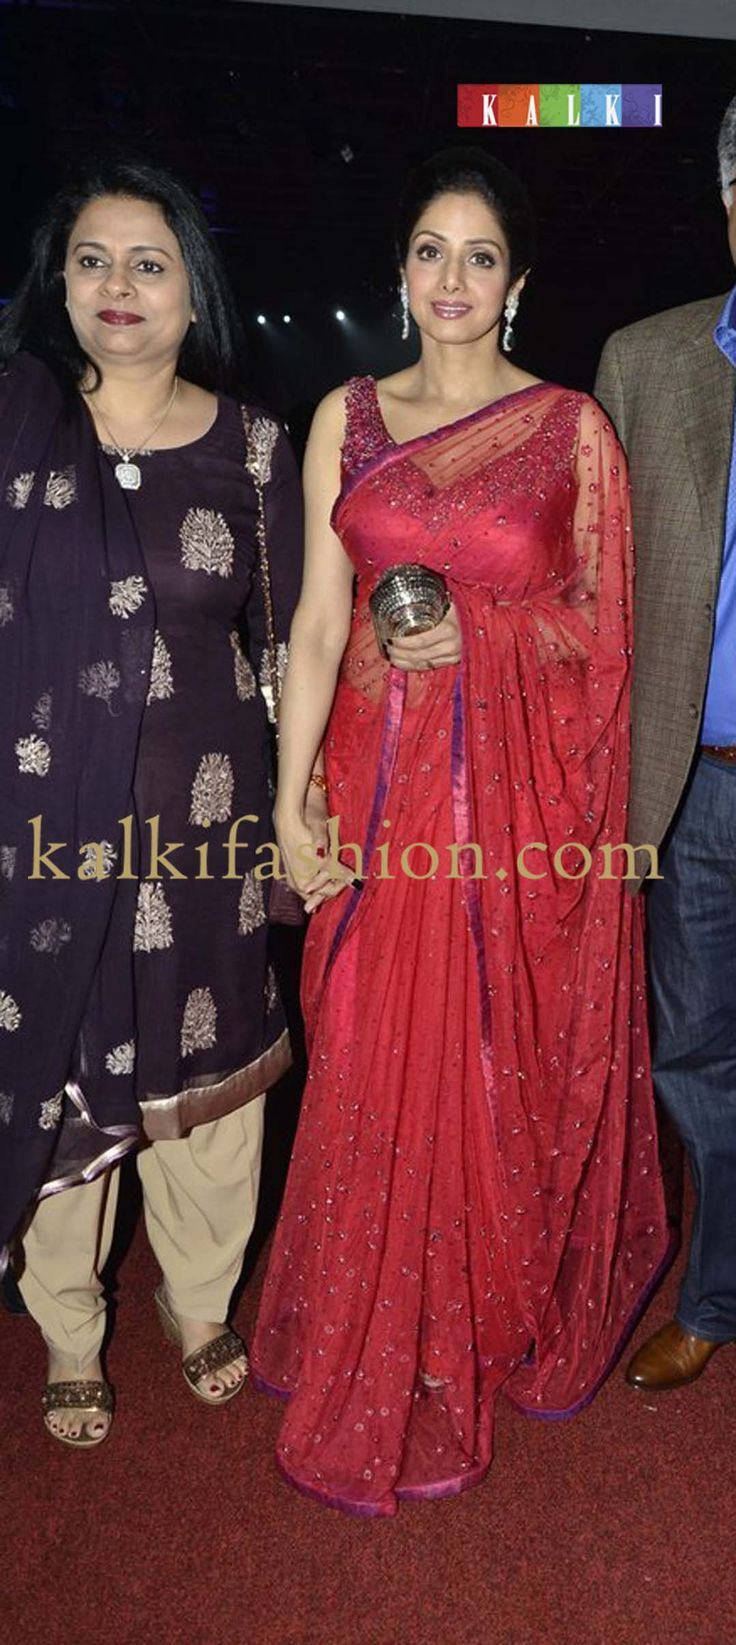 http://www.kalkifashion.com/             Sridevi in red saree sequenced attending SIIMA red carpet day 2